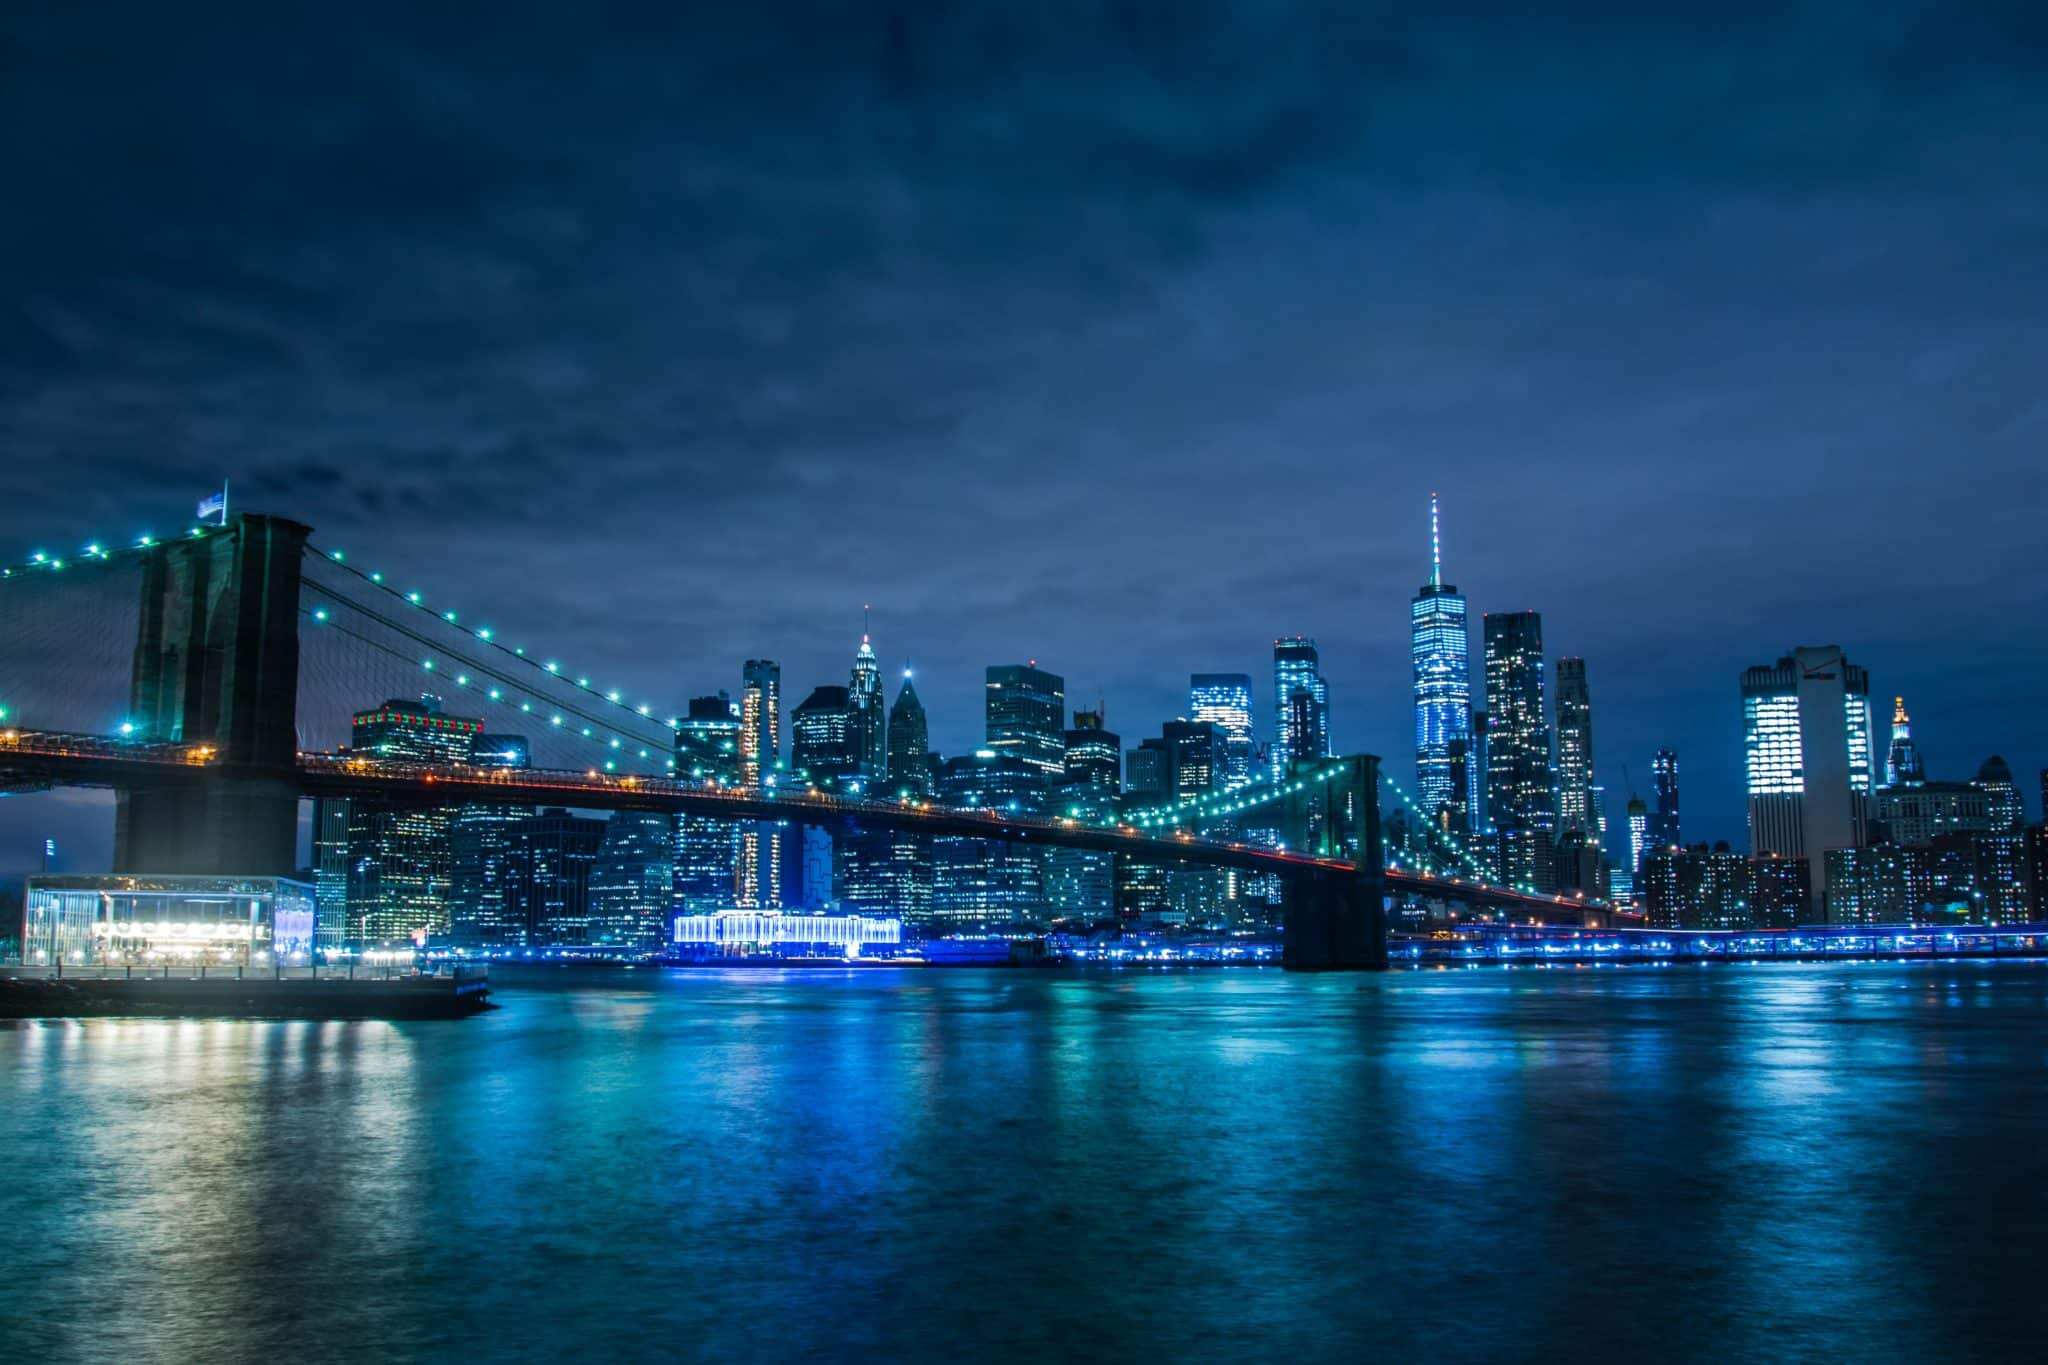 Brooklyn Bridge and New York City by Night